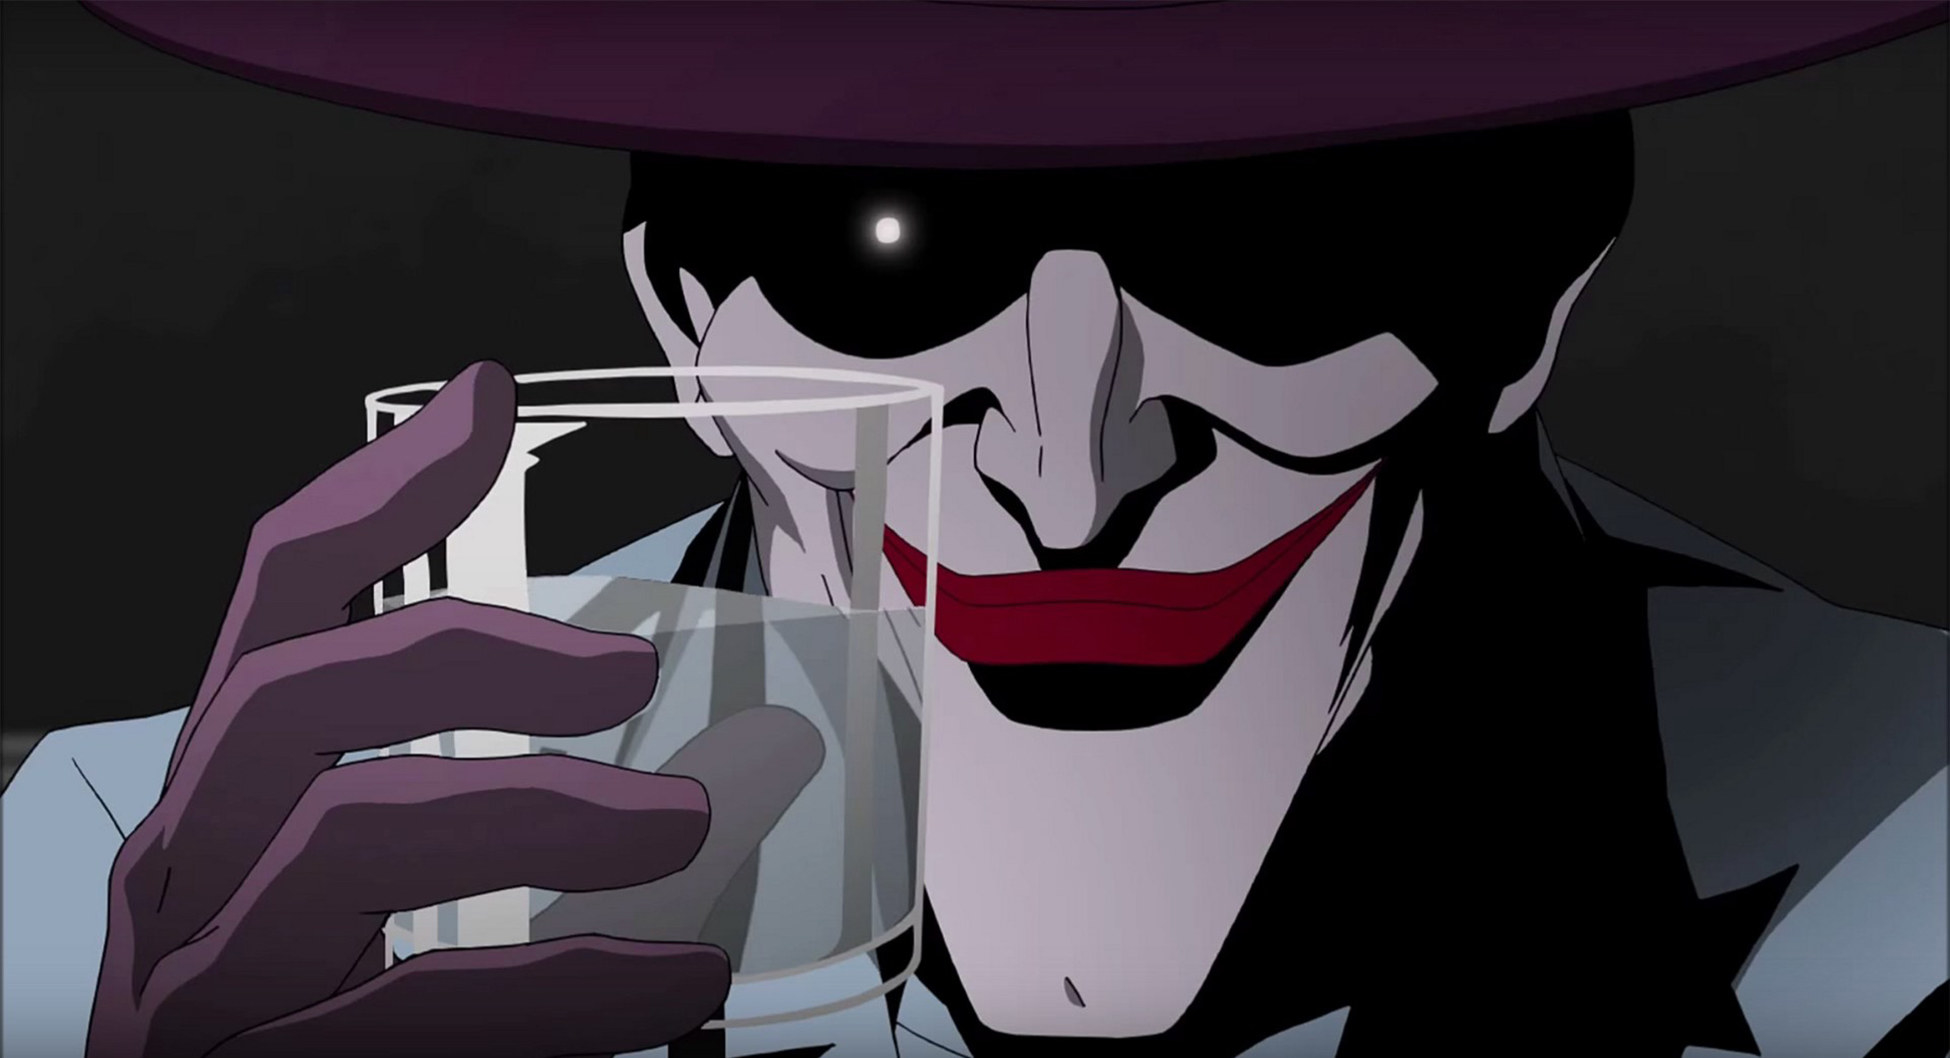 The Joker smiles and raises a glass